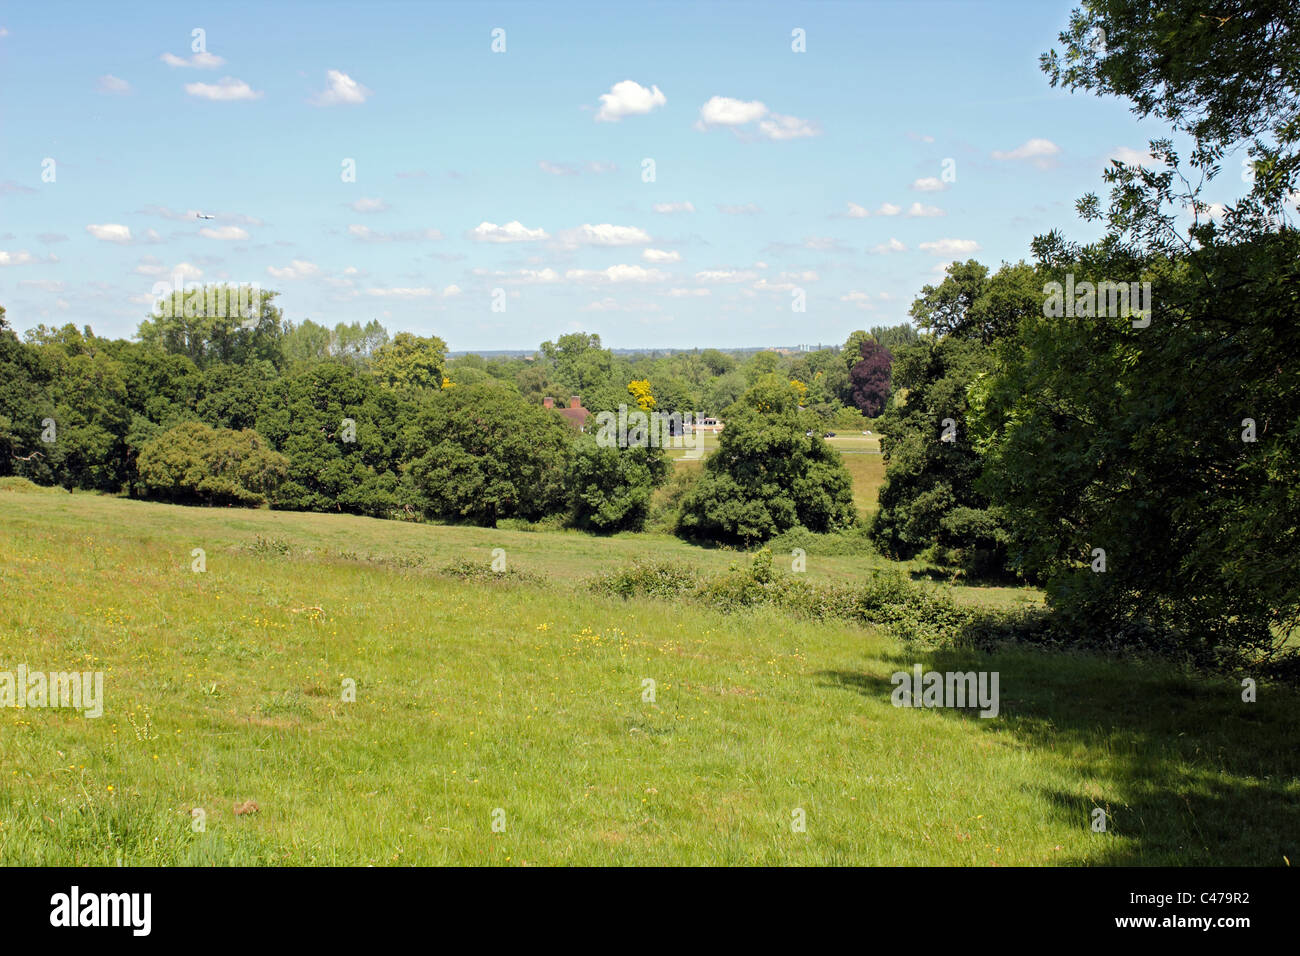 View from John F Kennedy Memorial, Runnymede, Berkshire, England UK. - Stock Image